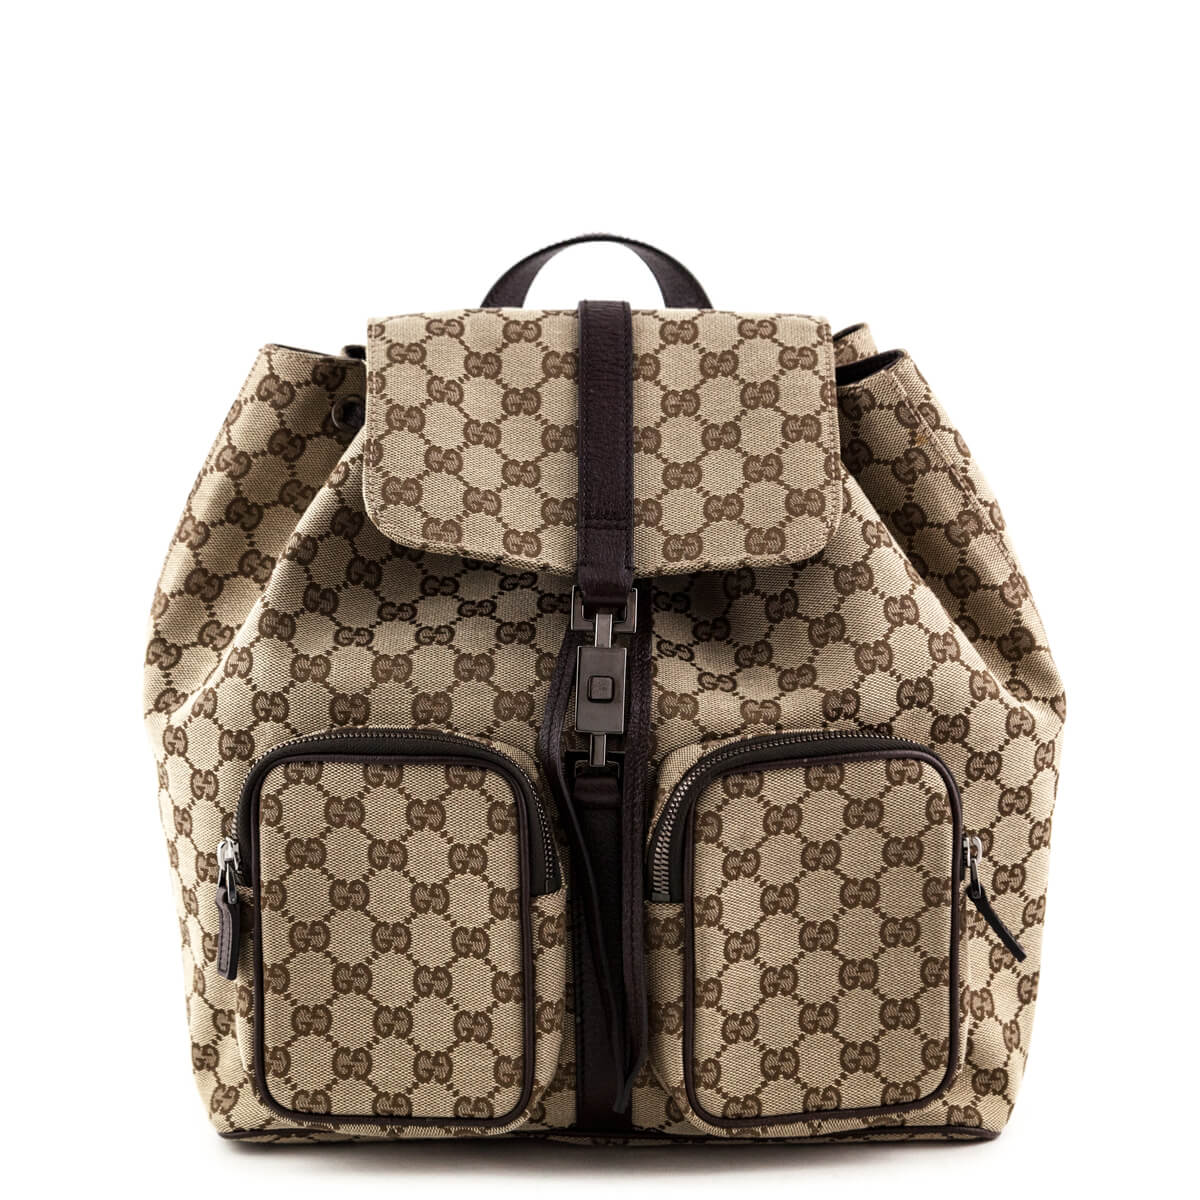 7e4d4385503 Gucci GG Canvas Abbey Backpack - LOVE that BAG - Preowned Authentic  Designer Handbags ...